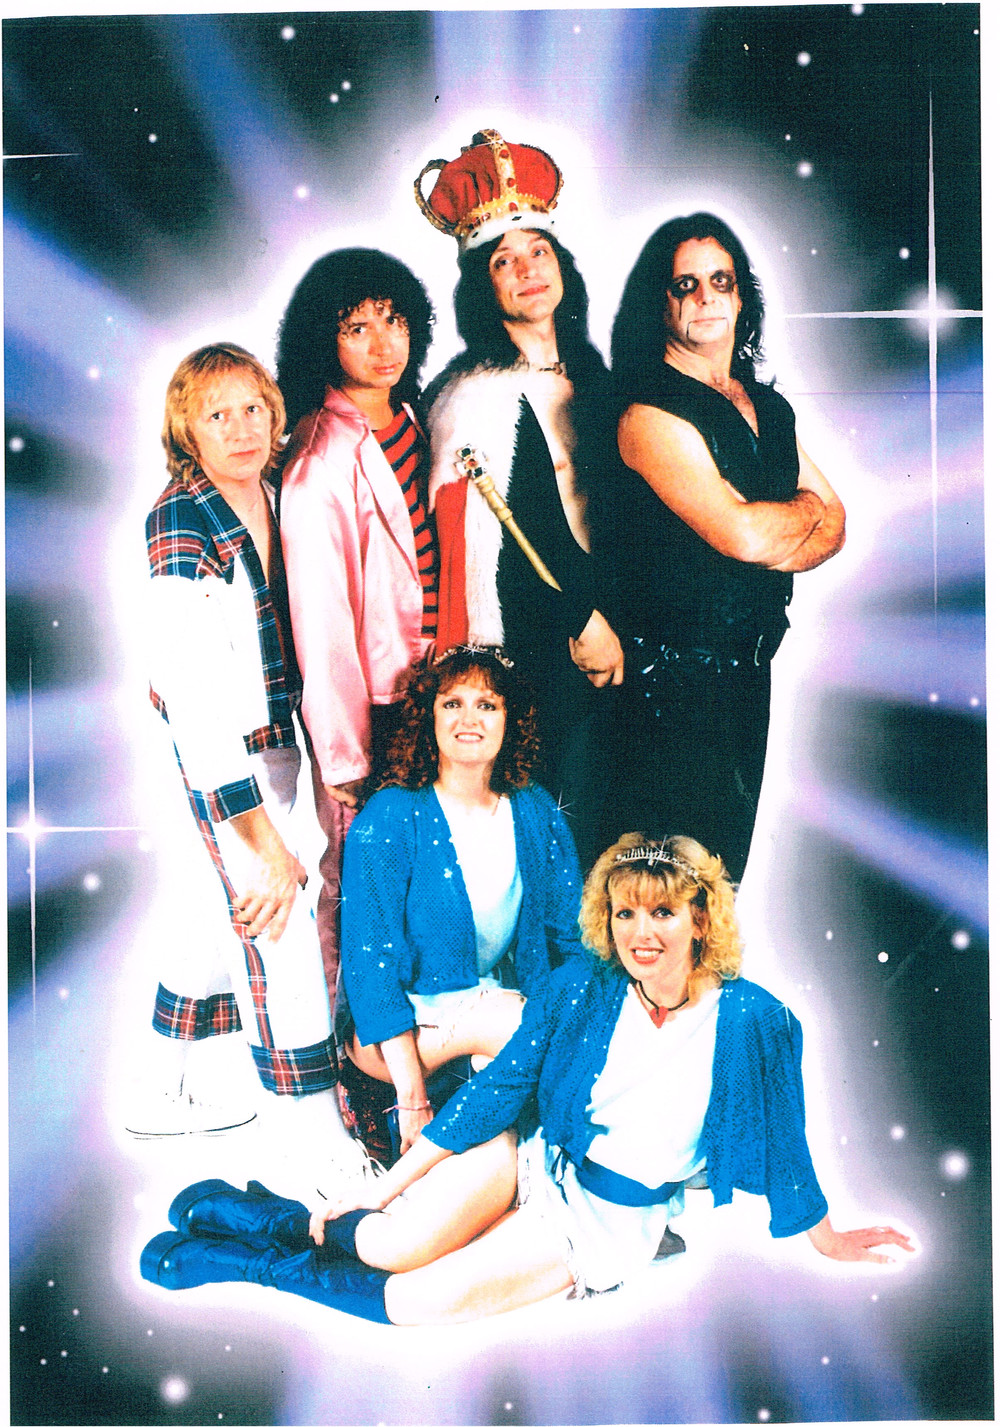 This is Ballroom Glitz playing for the 70s fancy dress - drummer is the former Bay City Rollers drummer!!